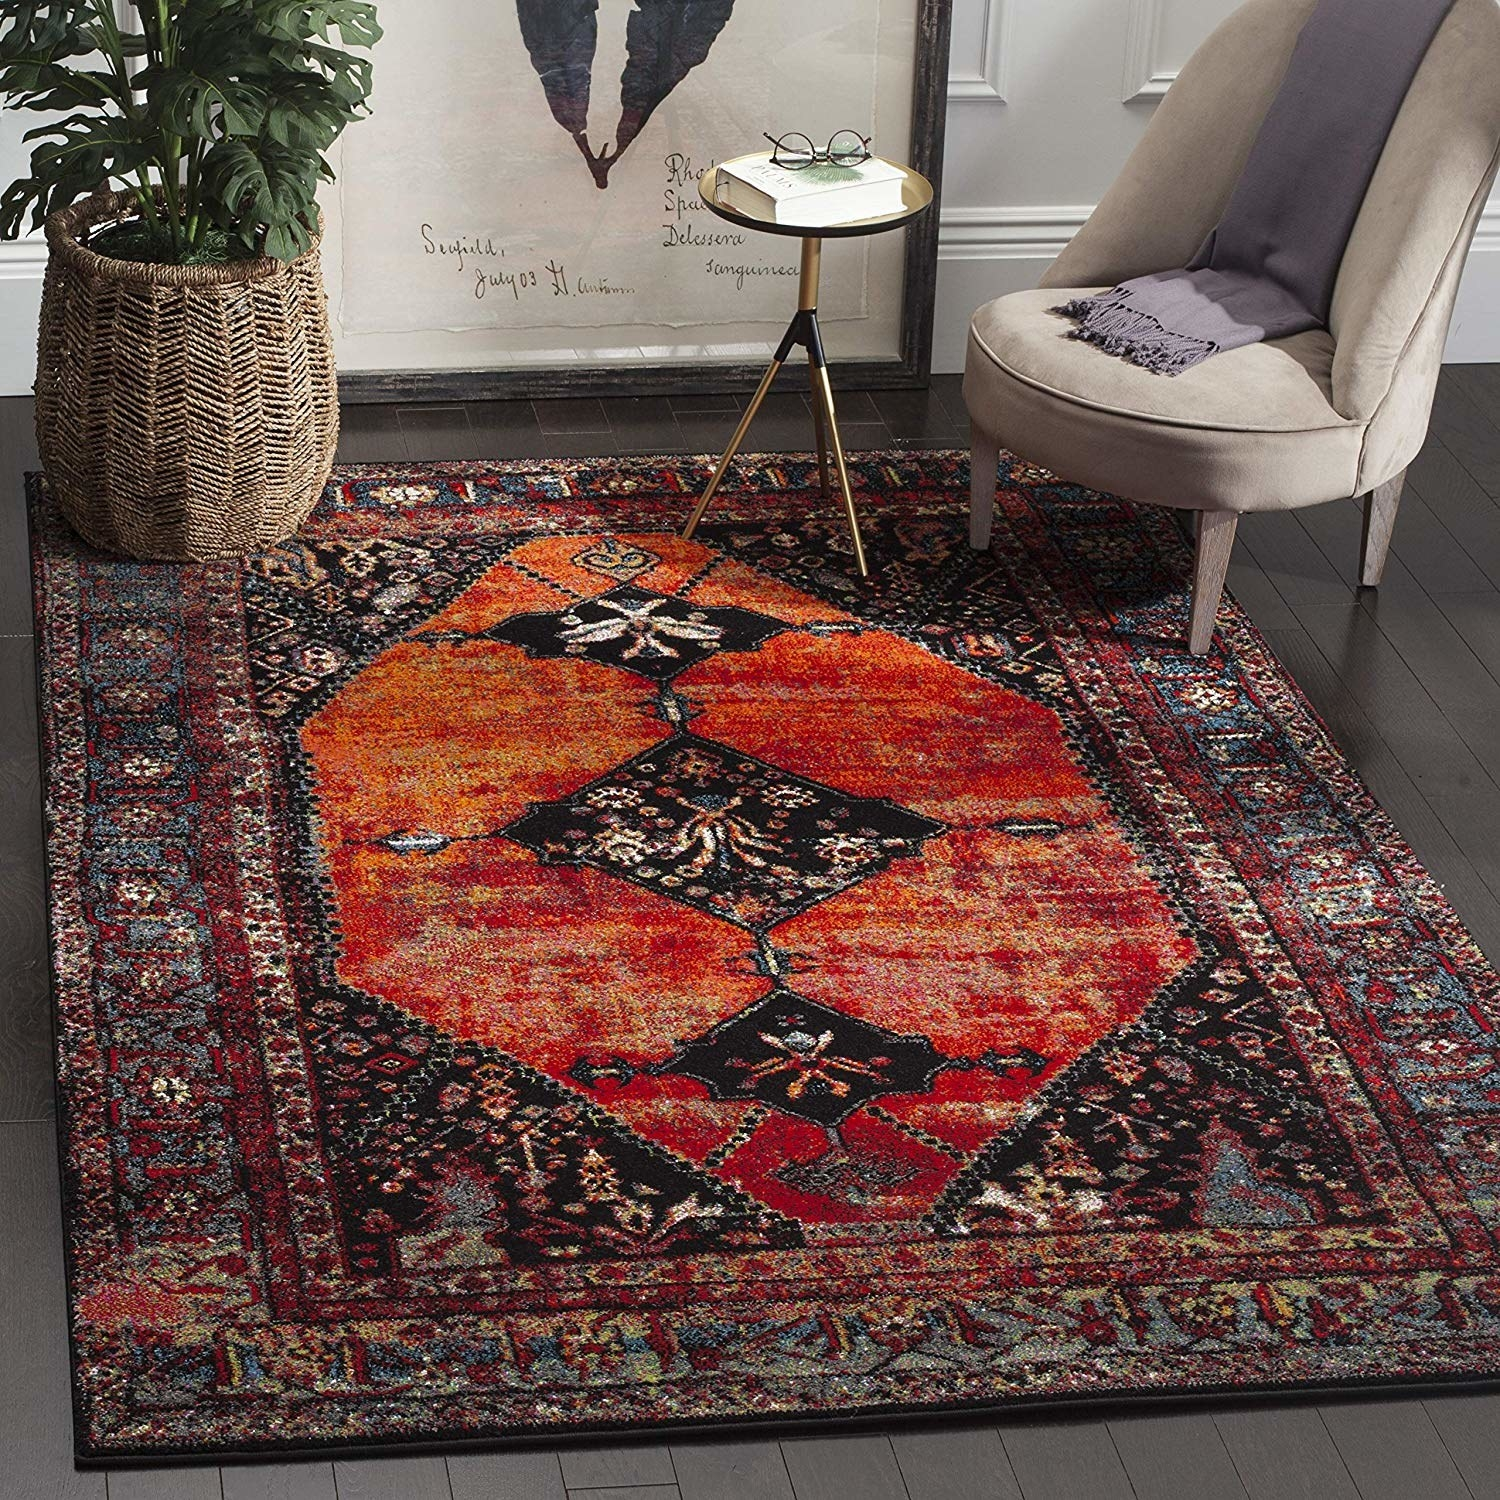 Classic Turkish style red rug